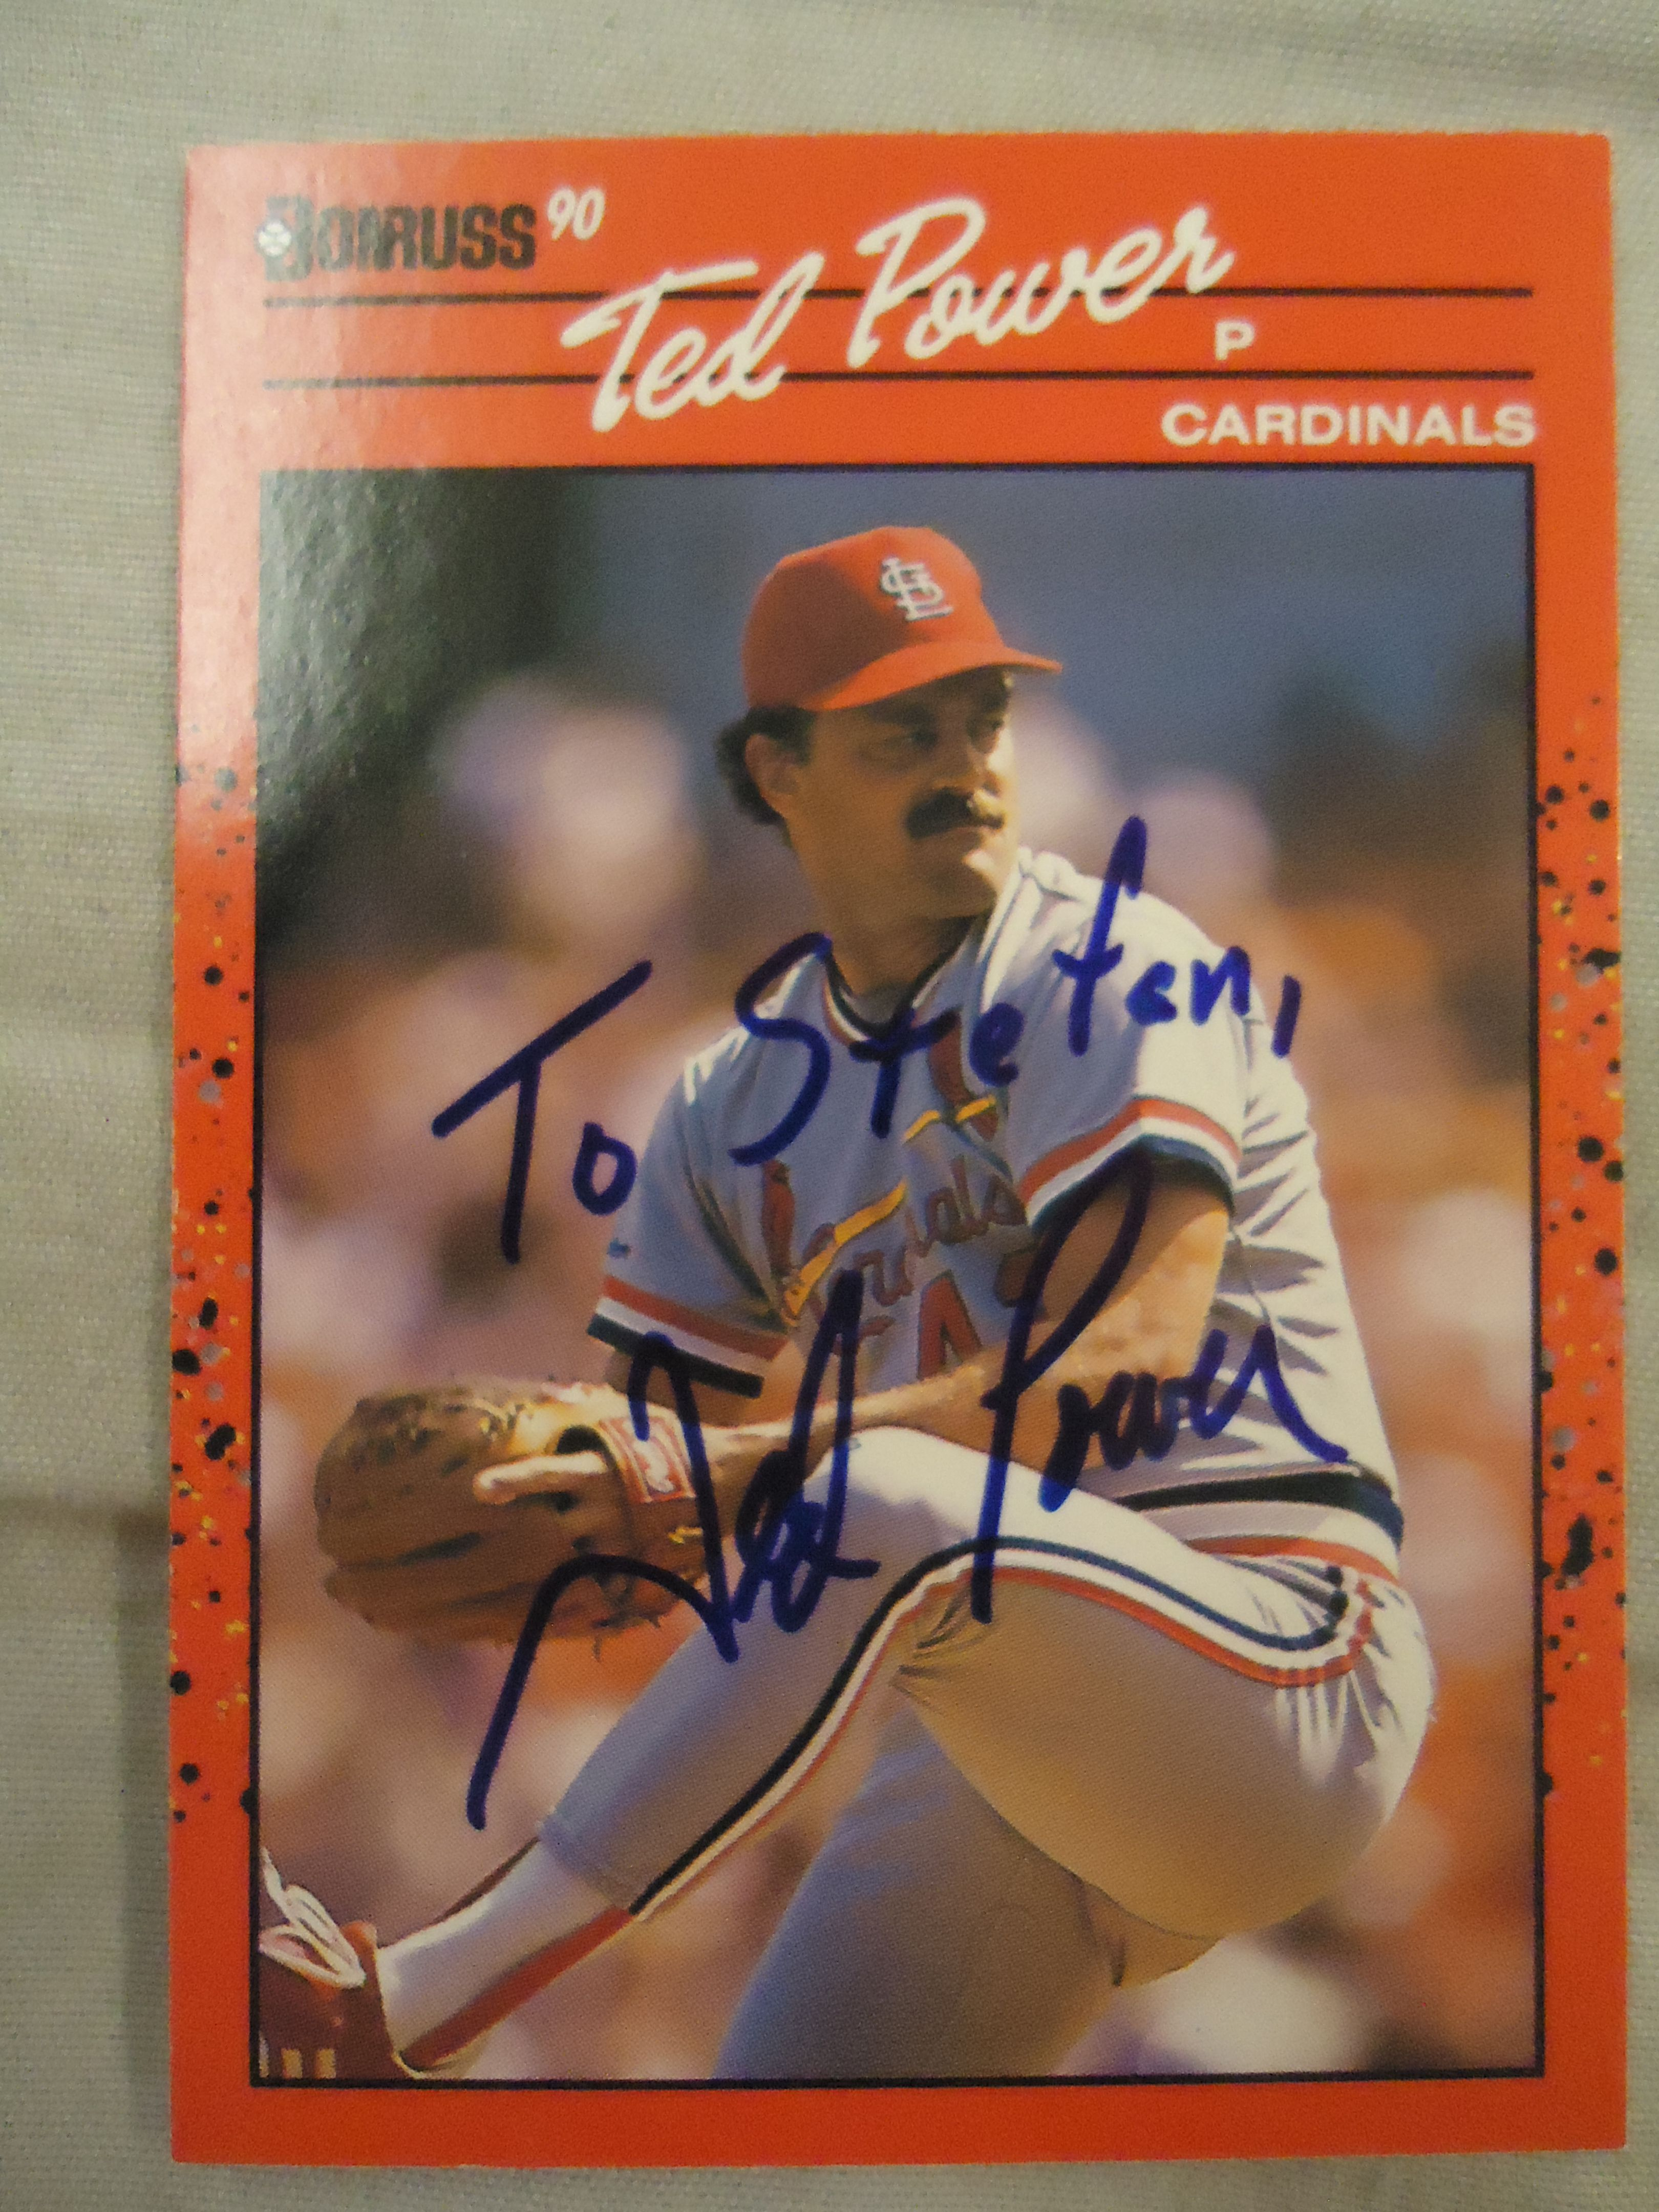 1990 donruss ted power ttm personalized to me